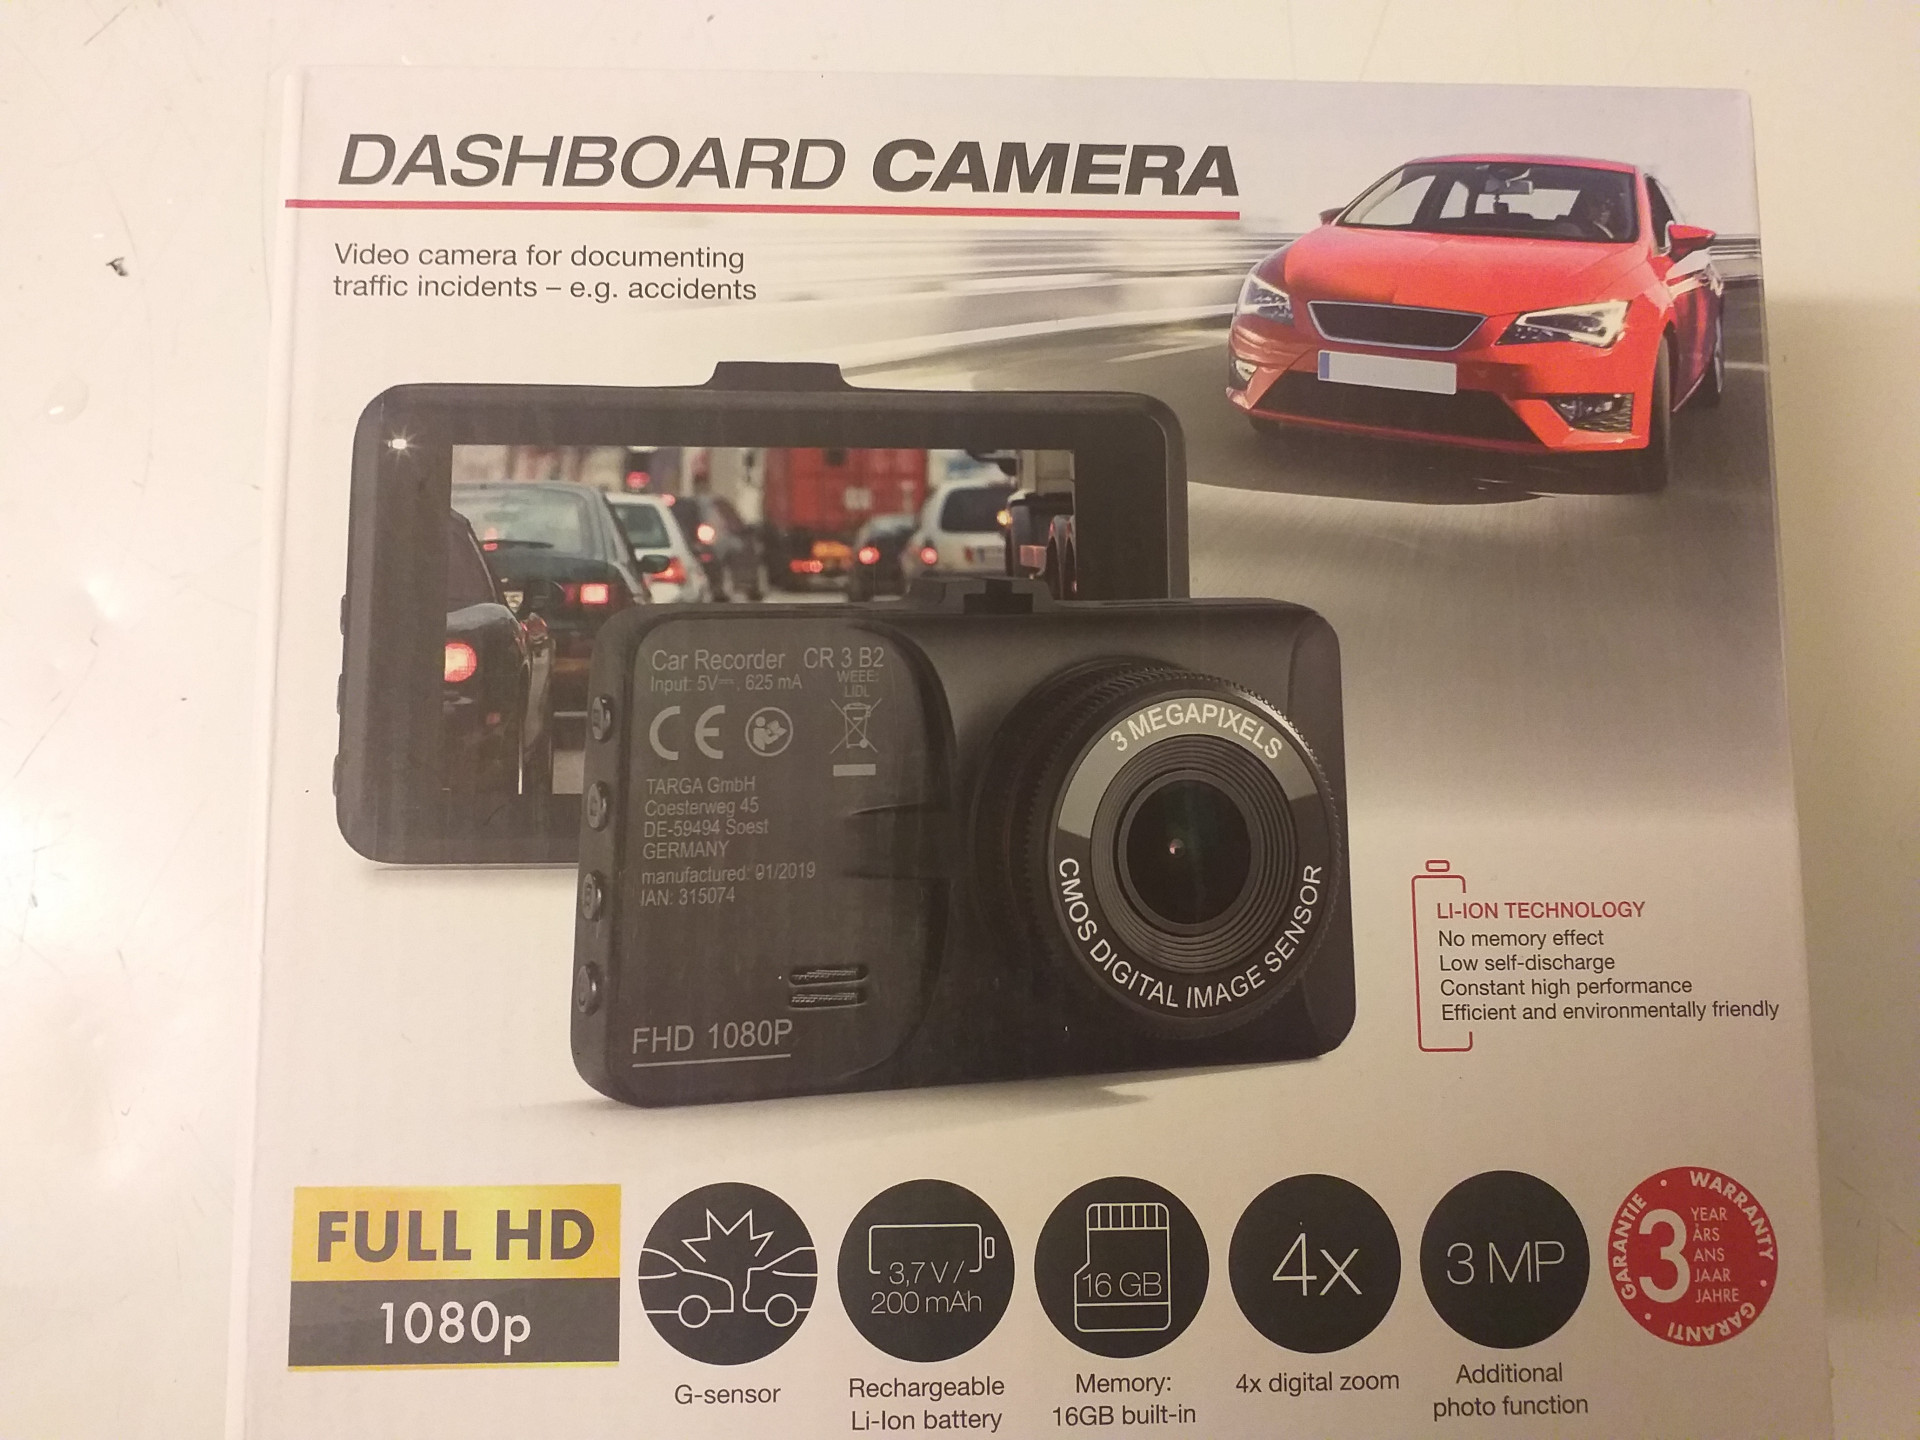 DASHBOARD camera liion technology